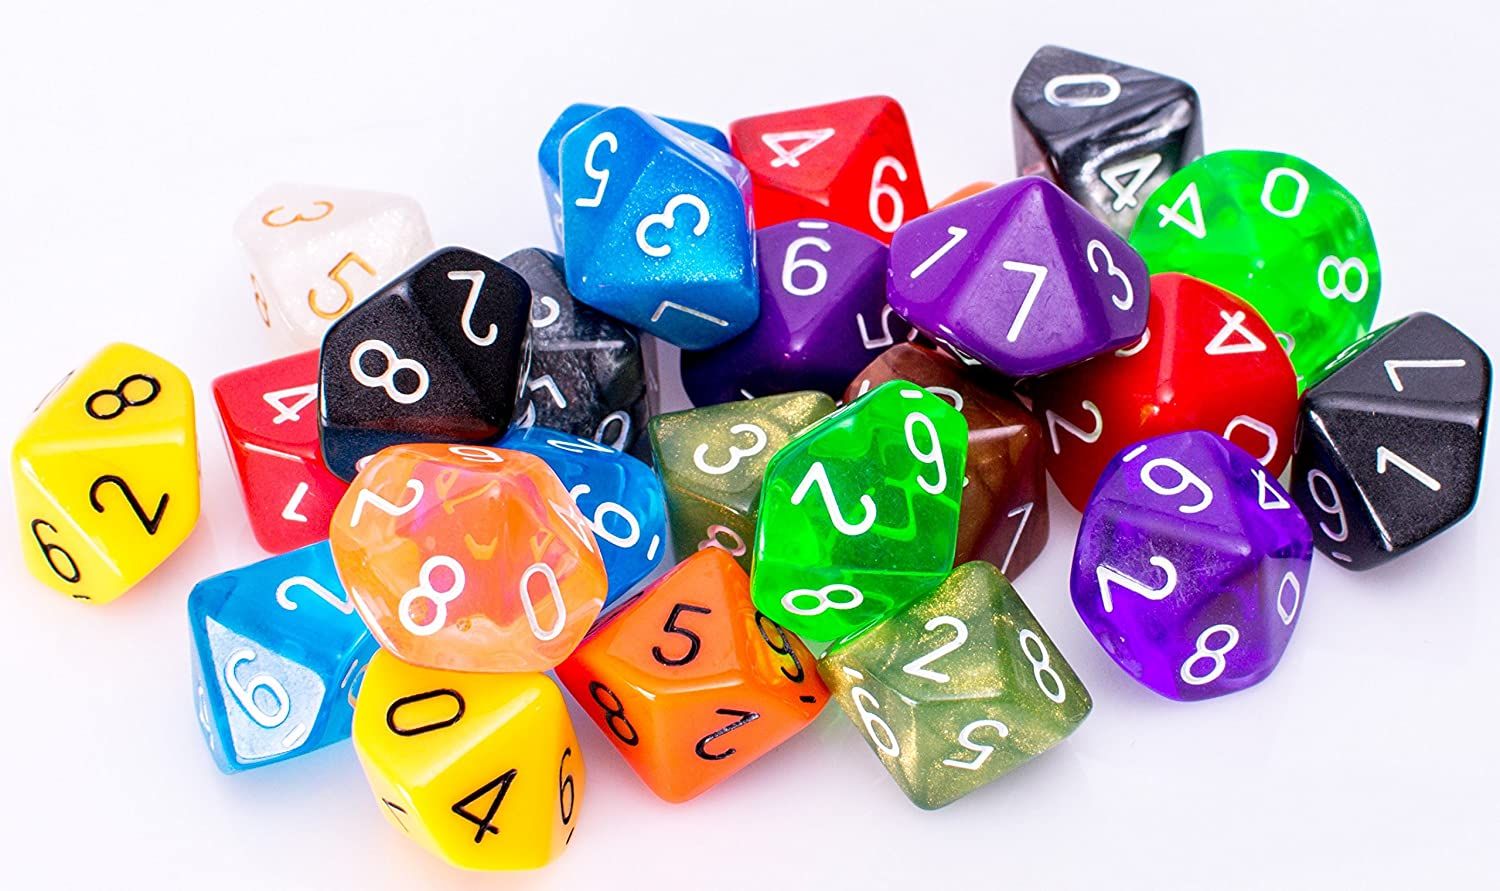 25 Count Assorted Pack of 10 Sided Dice  Multi colord Assortment of D10 Polyhedral Dice